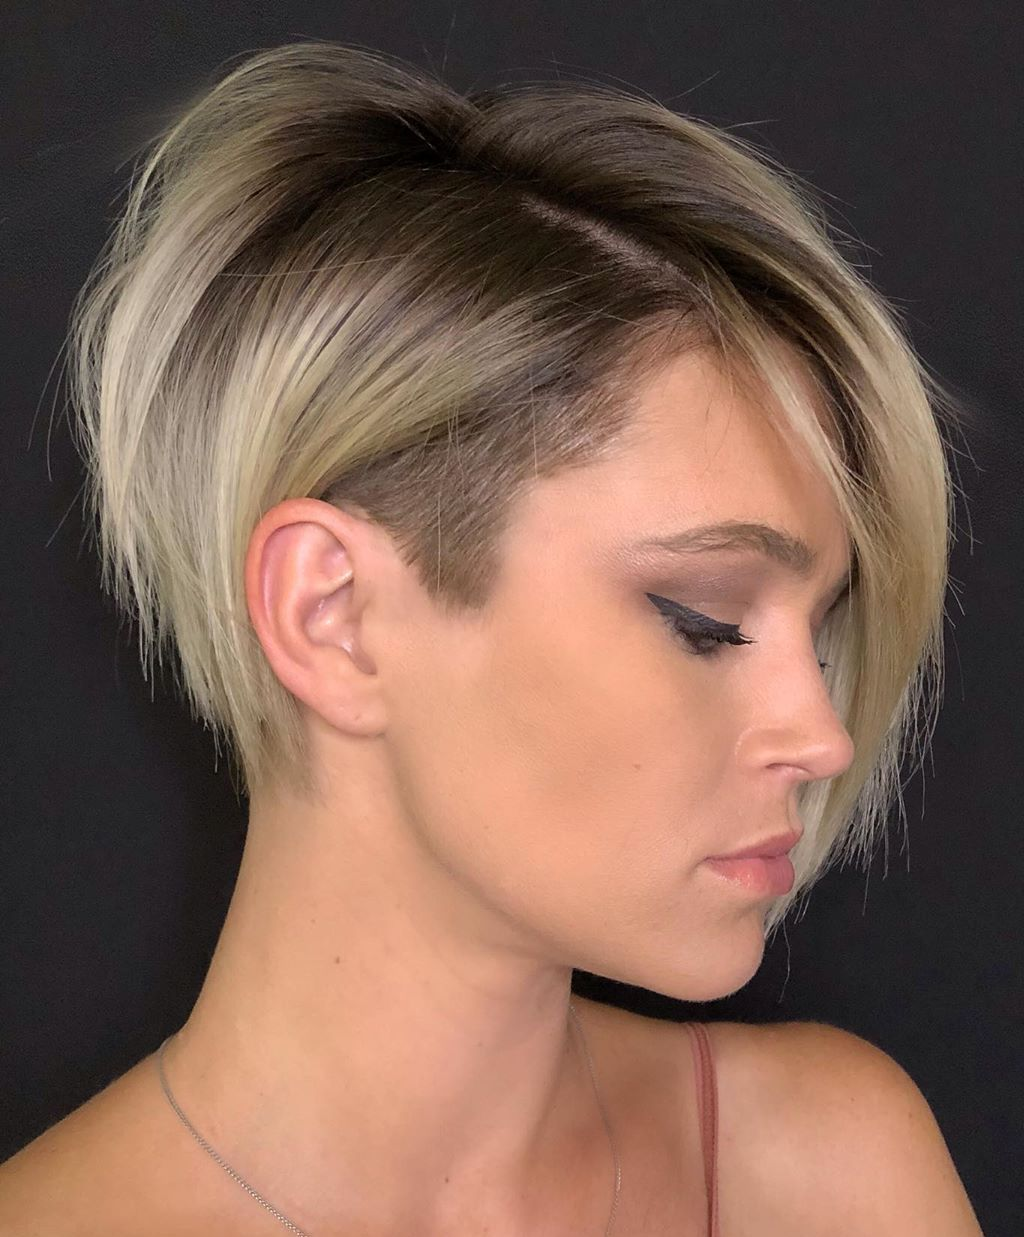 Pixie Haircut for Long Neck